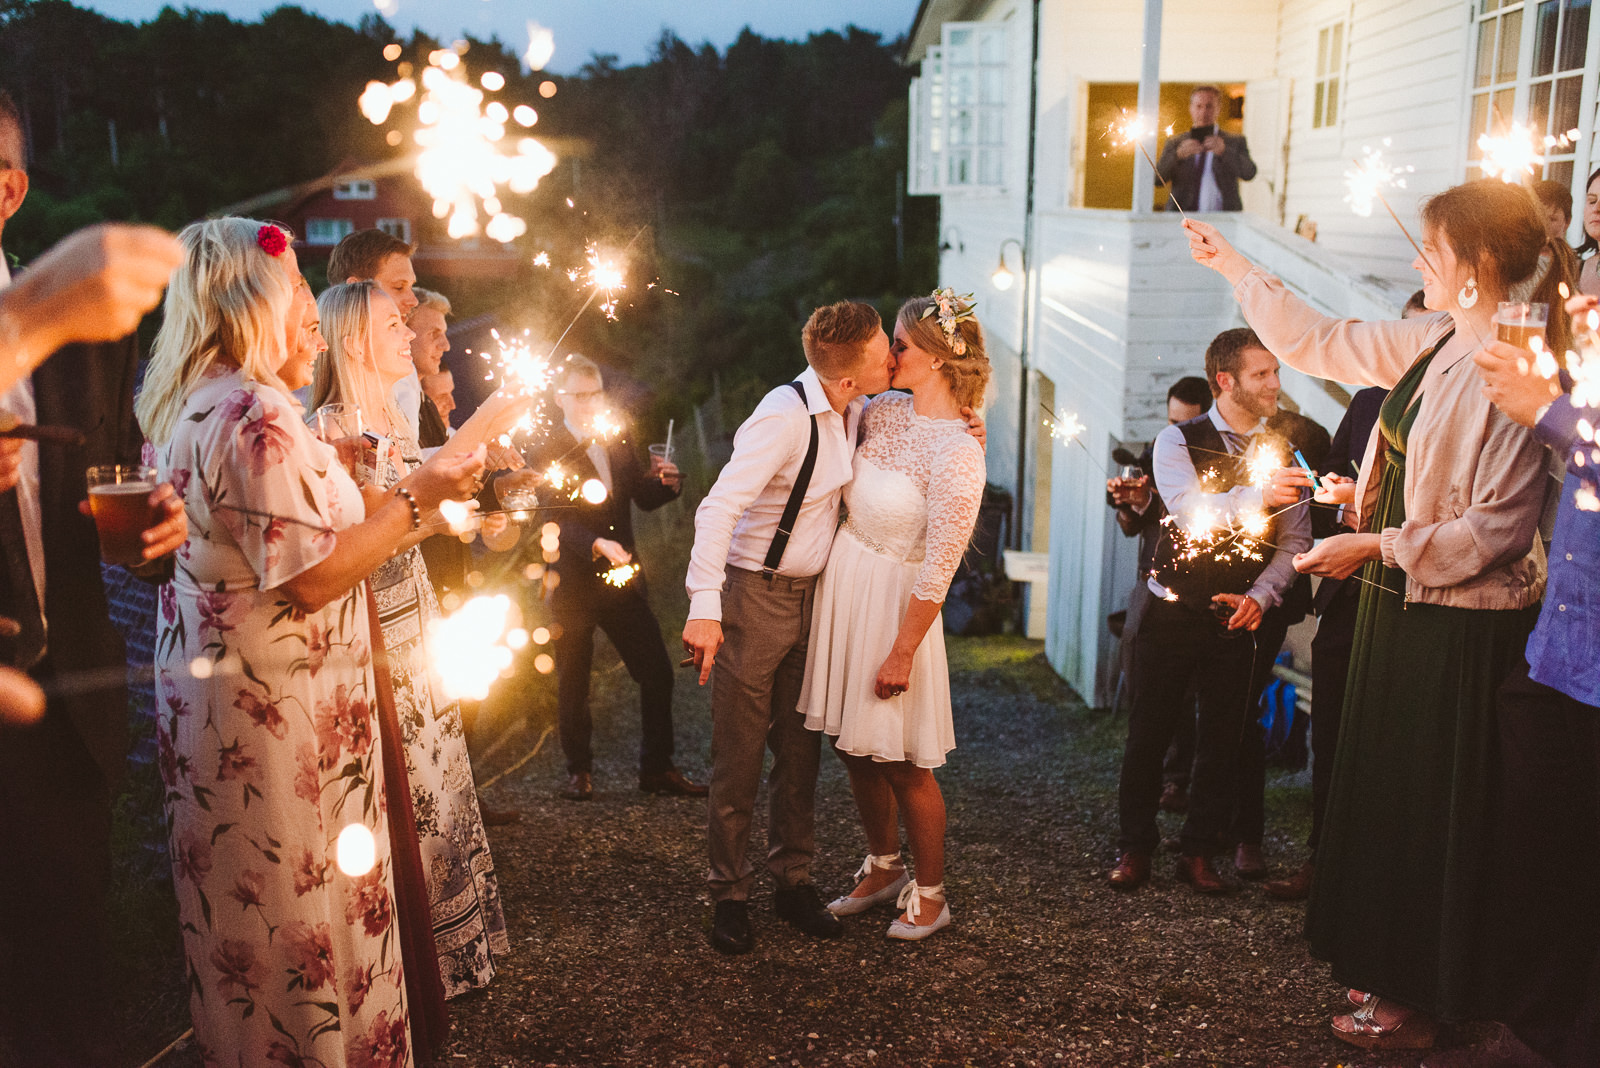 Sparklers as addition to or alternative to confetti